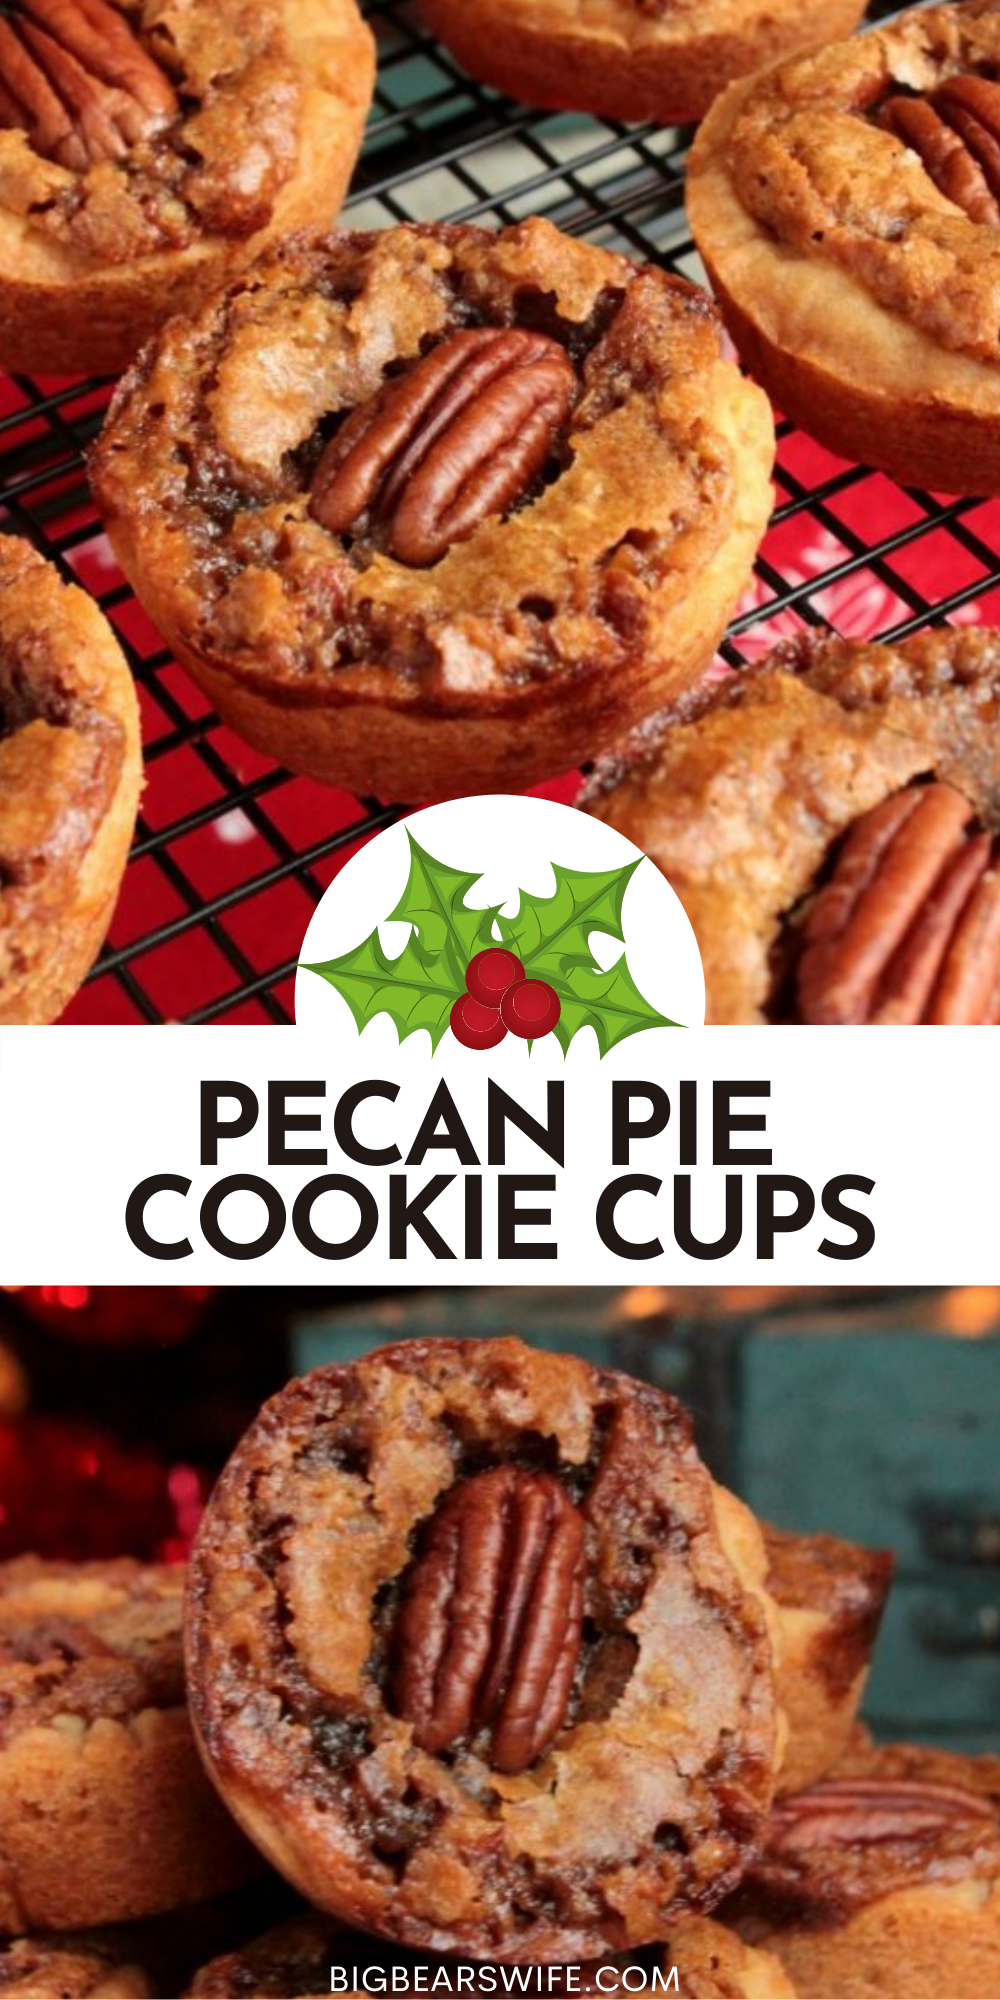 These Pecan Pie Cookie Cups have a sweet pecan pie filling baked inside of a sugar cookie crust to create the perfect mini pecan pie dessert for your next holiday party! via @bigbearswife